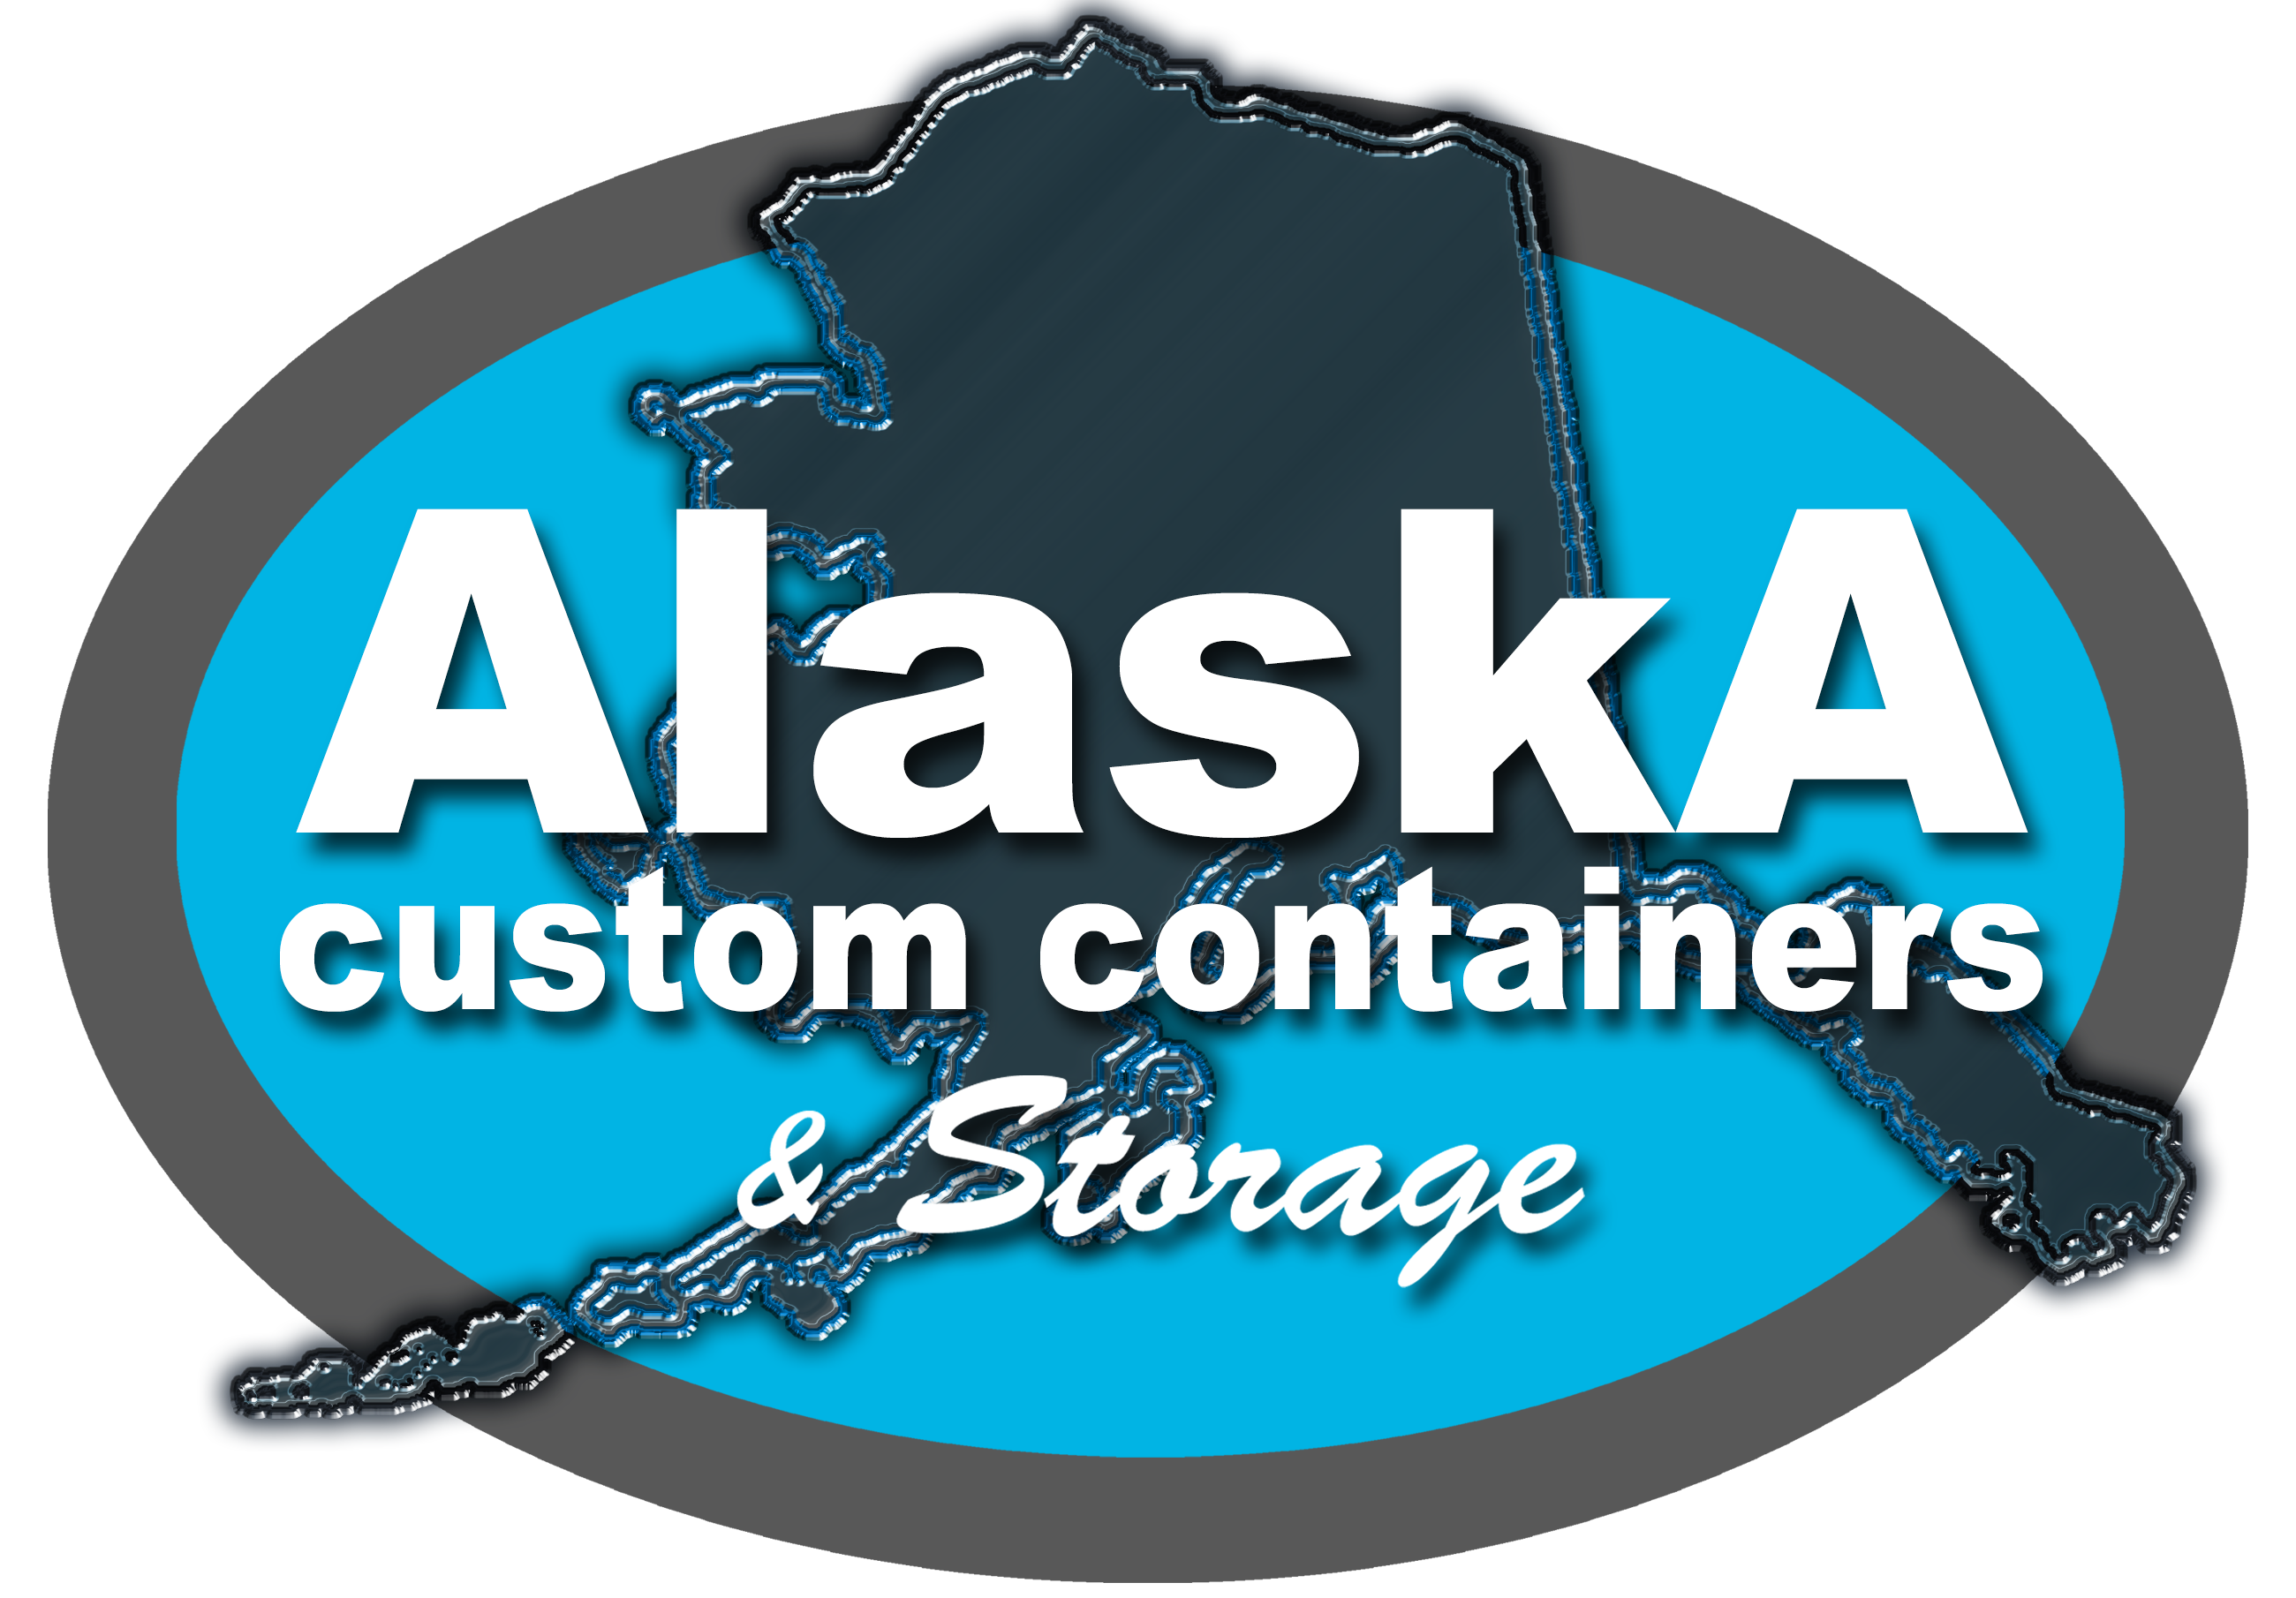 Alaska Custom Containers & Storage